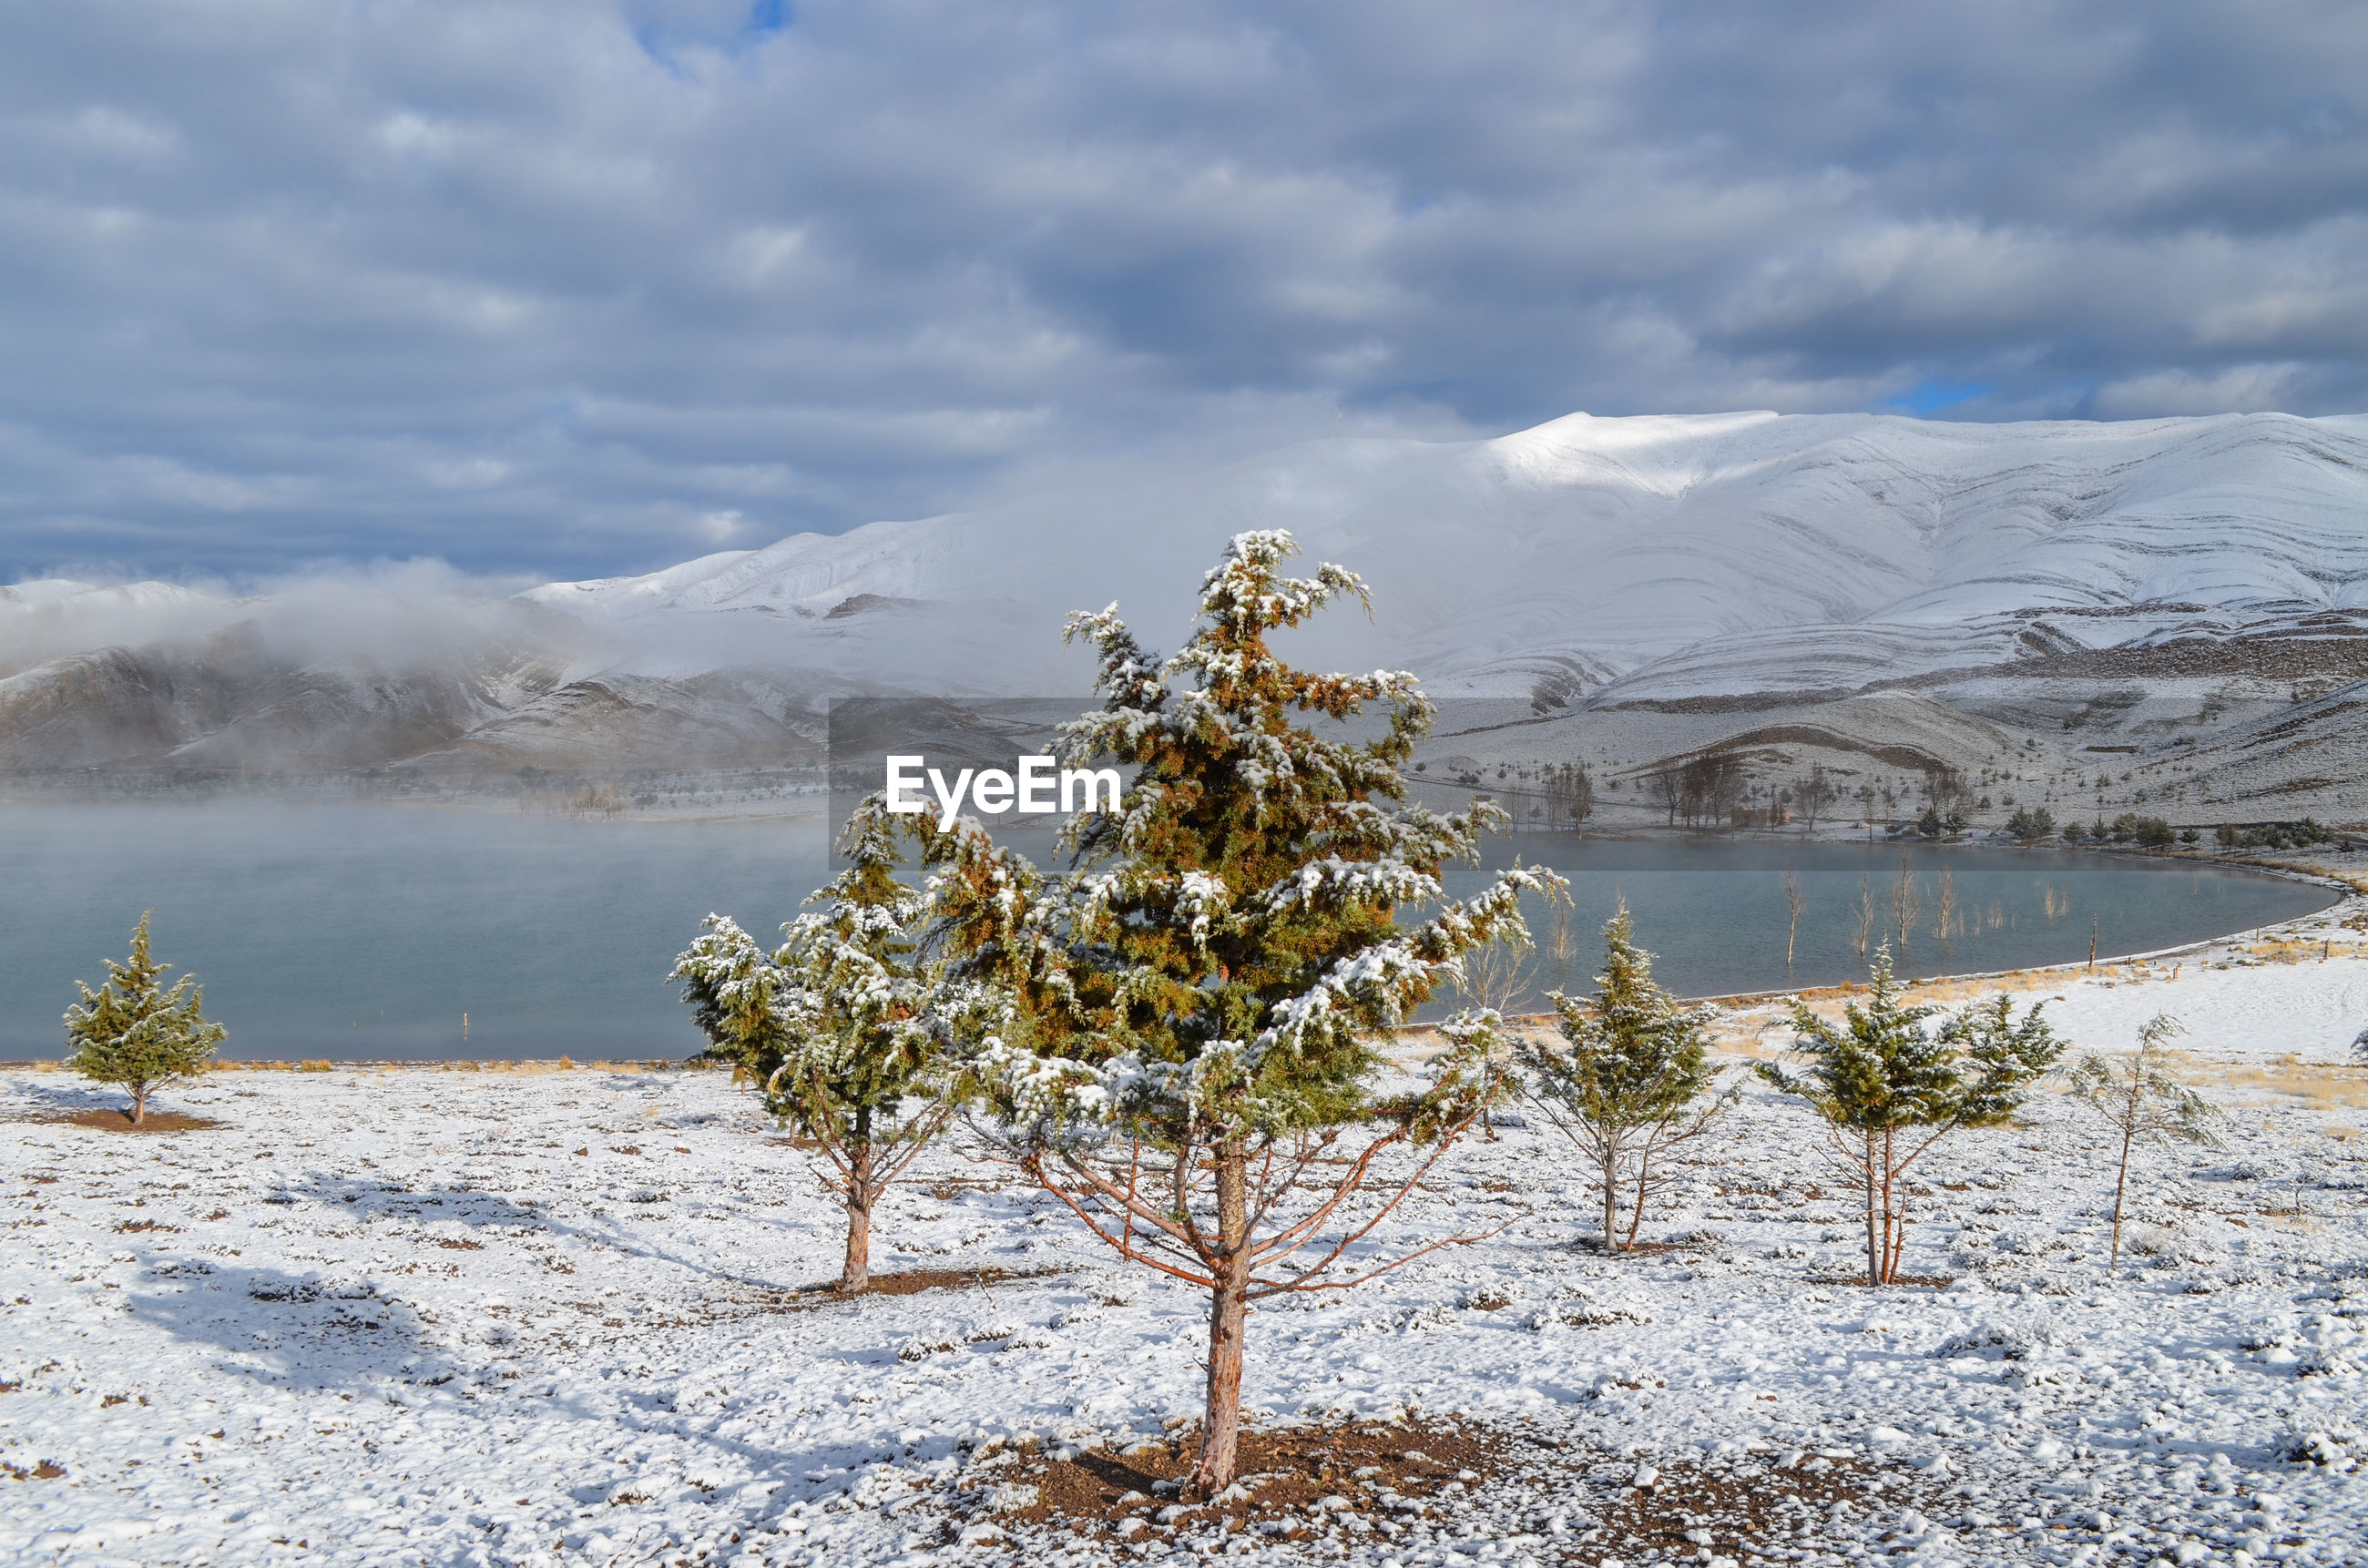 SCENIC VIEW OF TREE BY LAKE AGAINST SKY